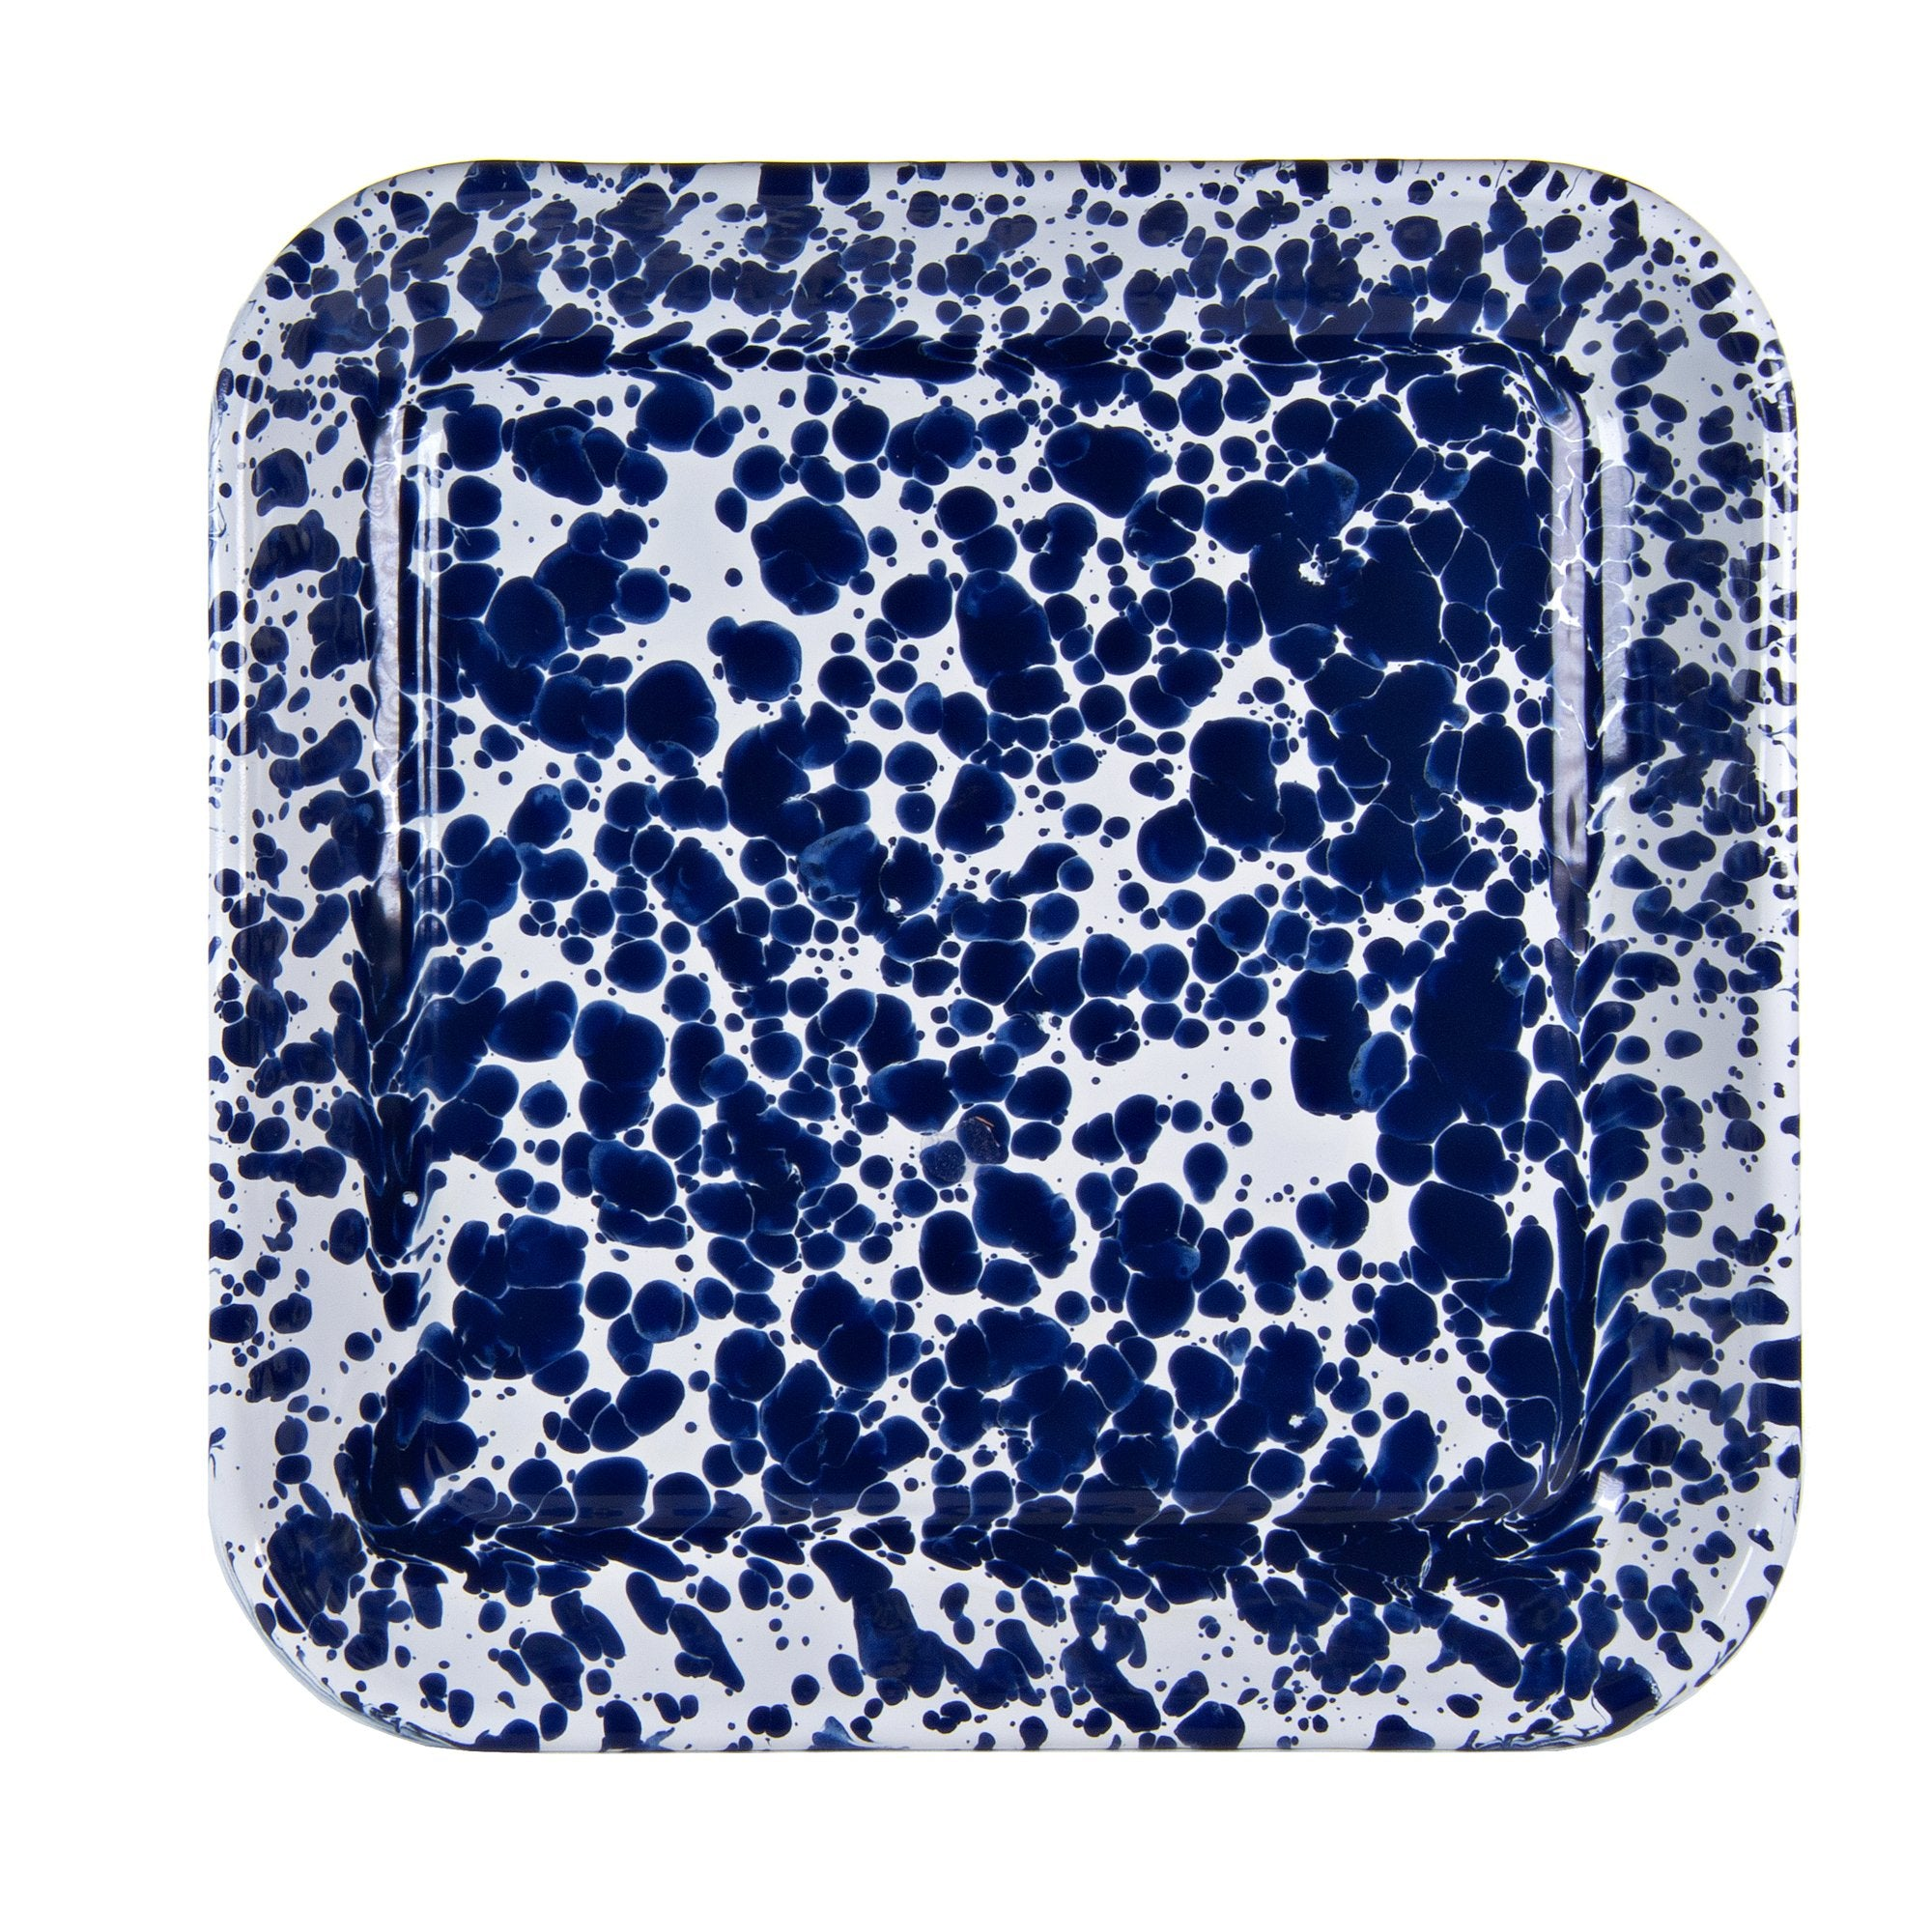 CB09S2 - Cobalt Blue Swirl - Set of 2 - Enamelware 10.5 Inch Square Trays by Golden Rabbit